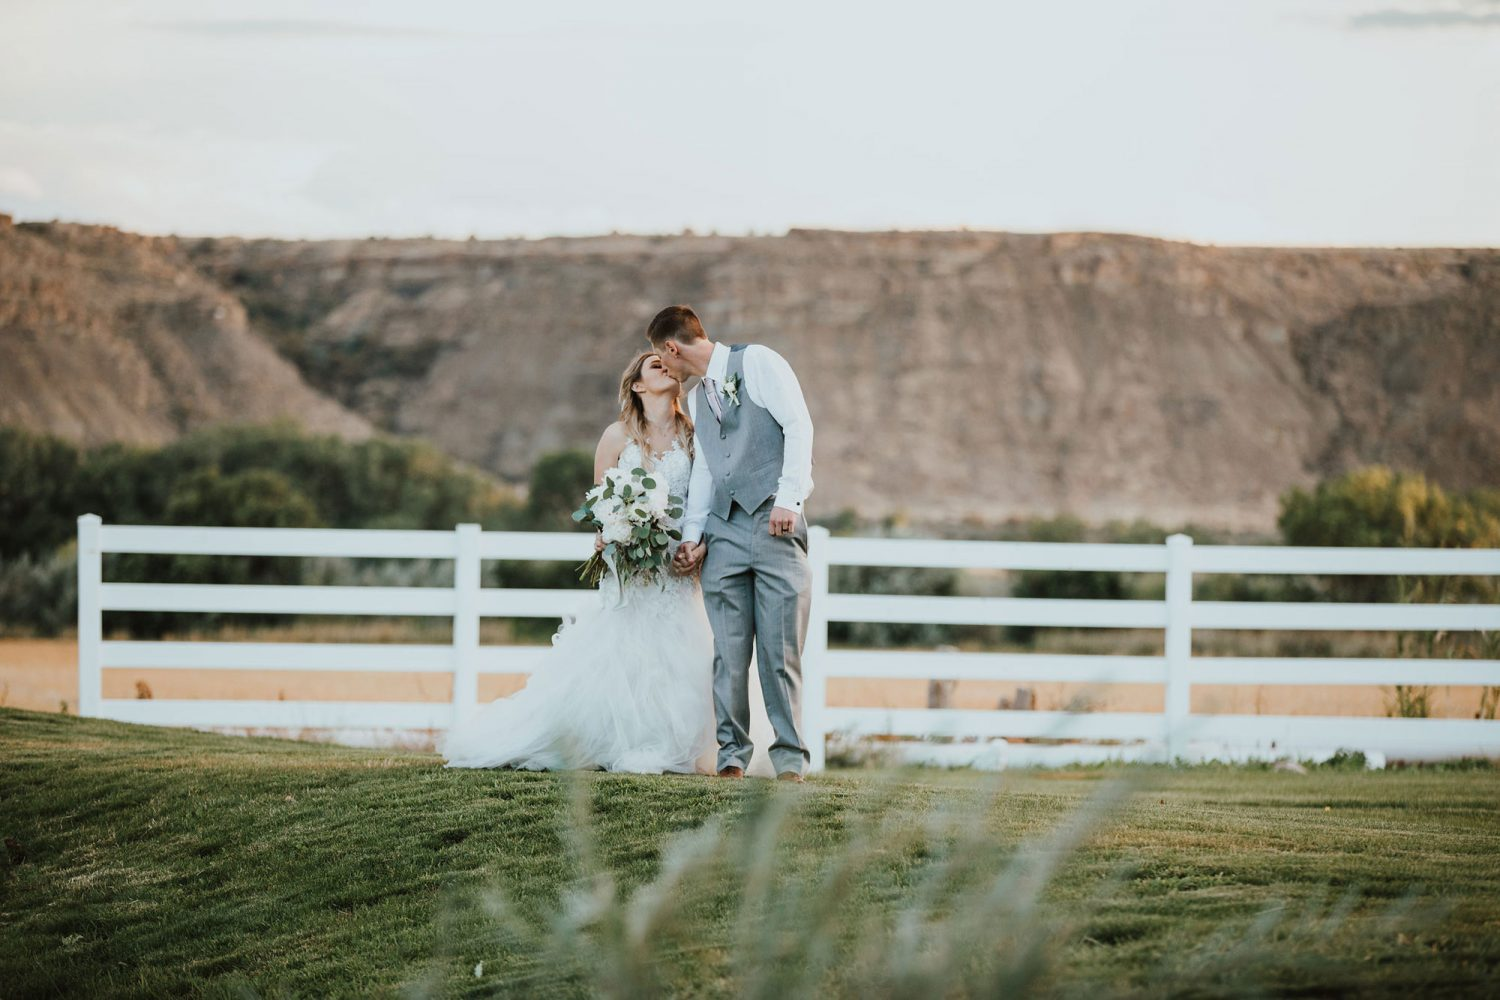 Wedding couple from a Rustic Glam Wedding at Triple J Ranch in Kirtland, New Mexico